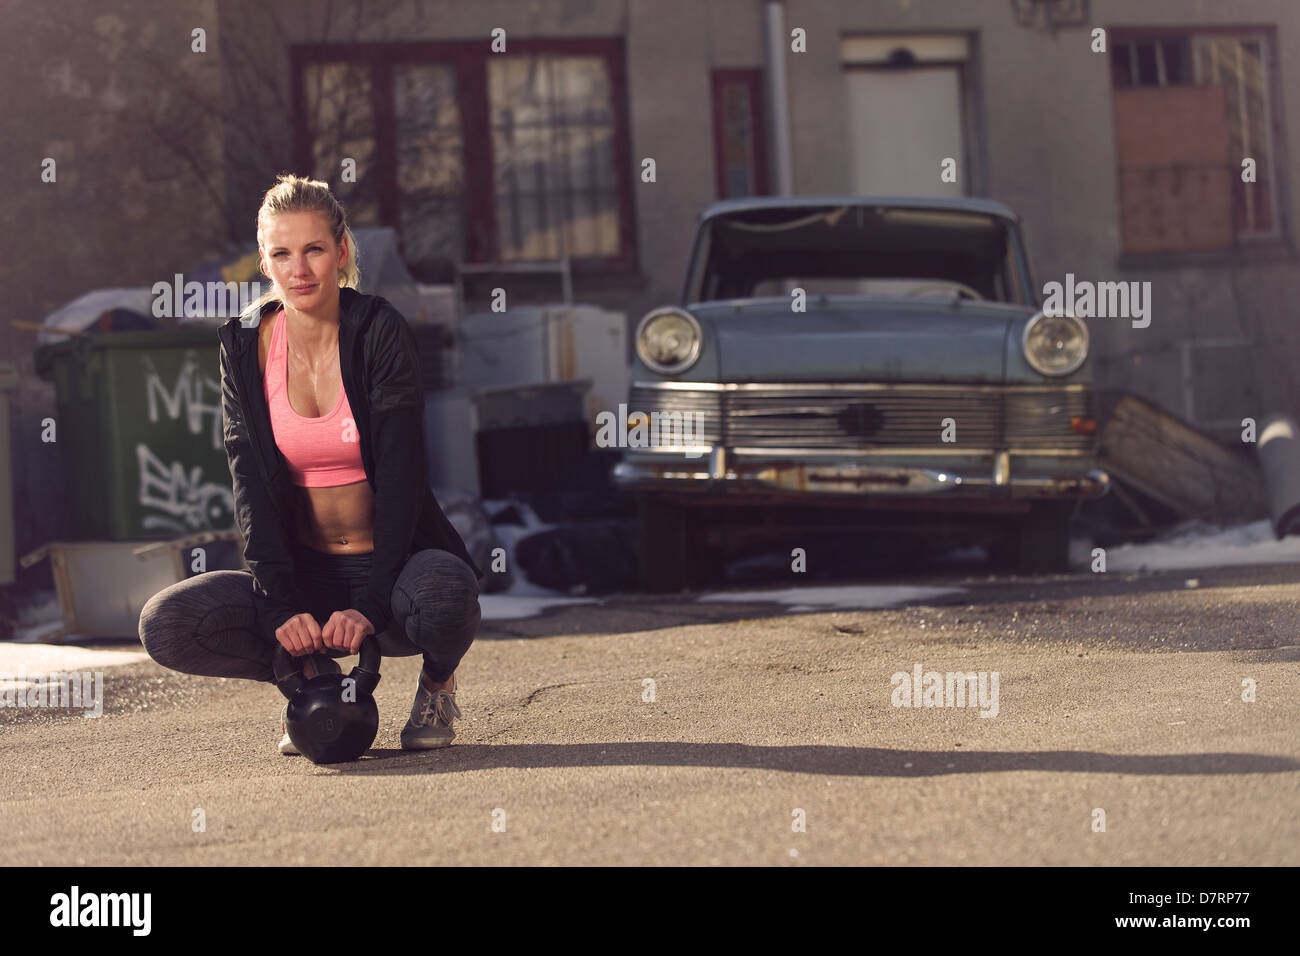 Resting fitness woman on the street having a break after exercising - Stock Image